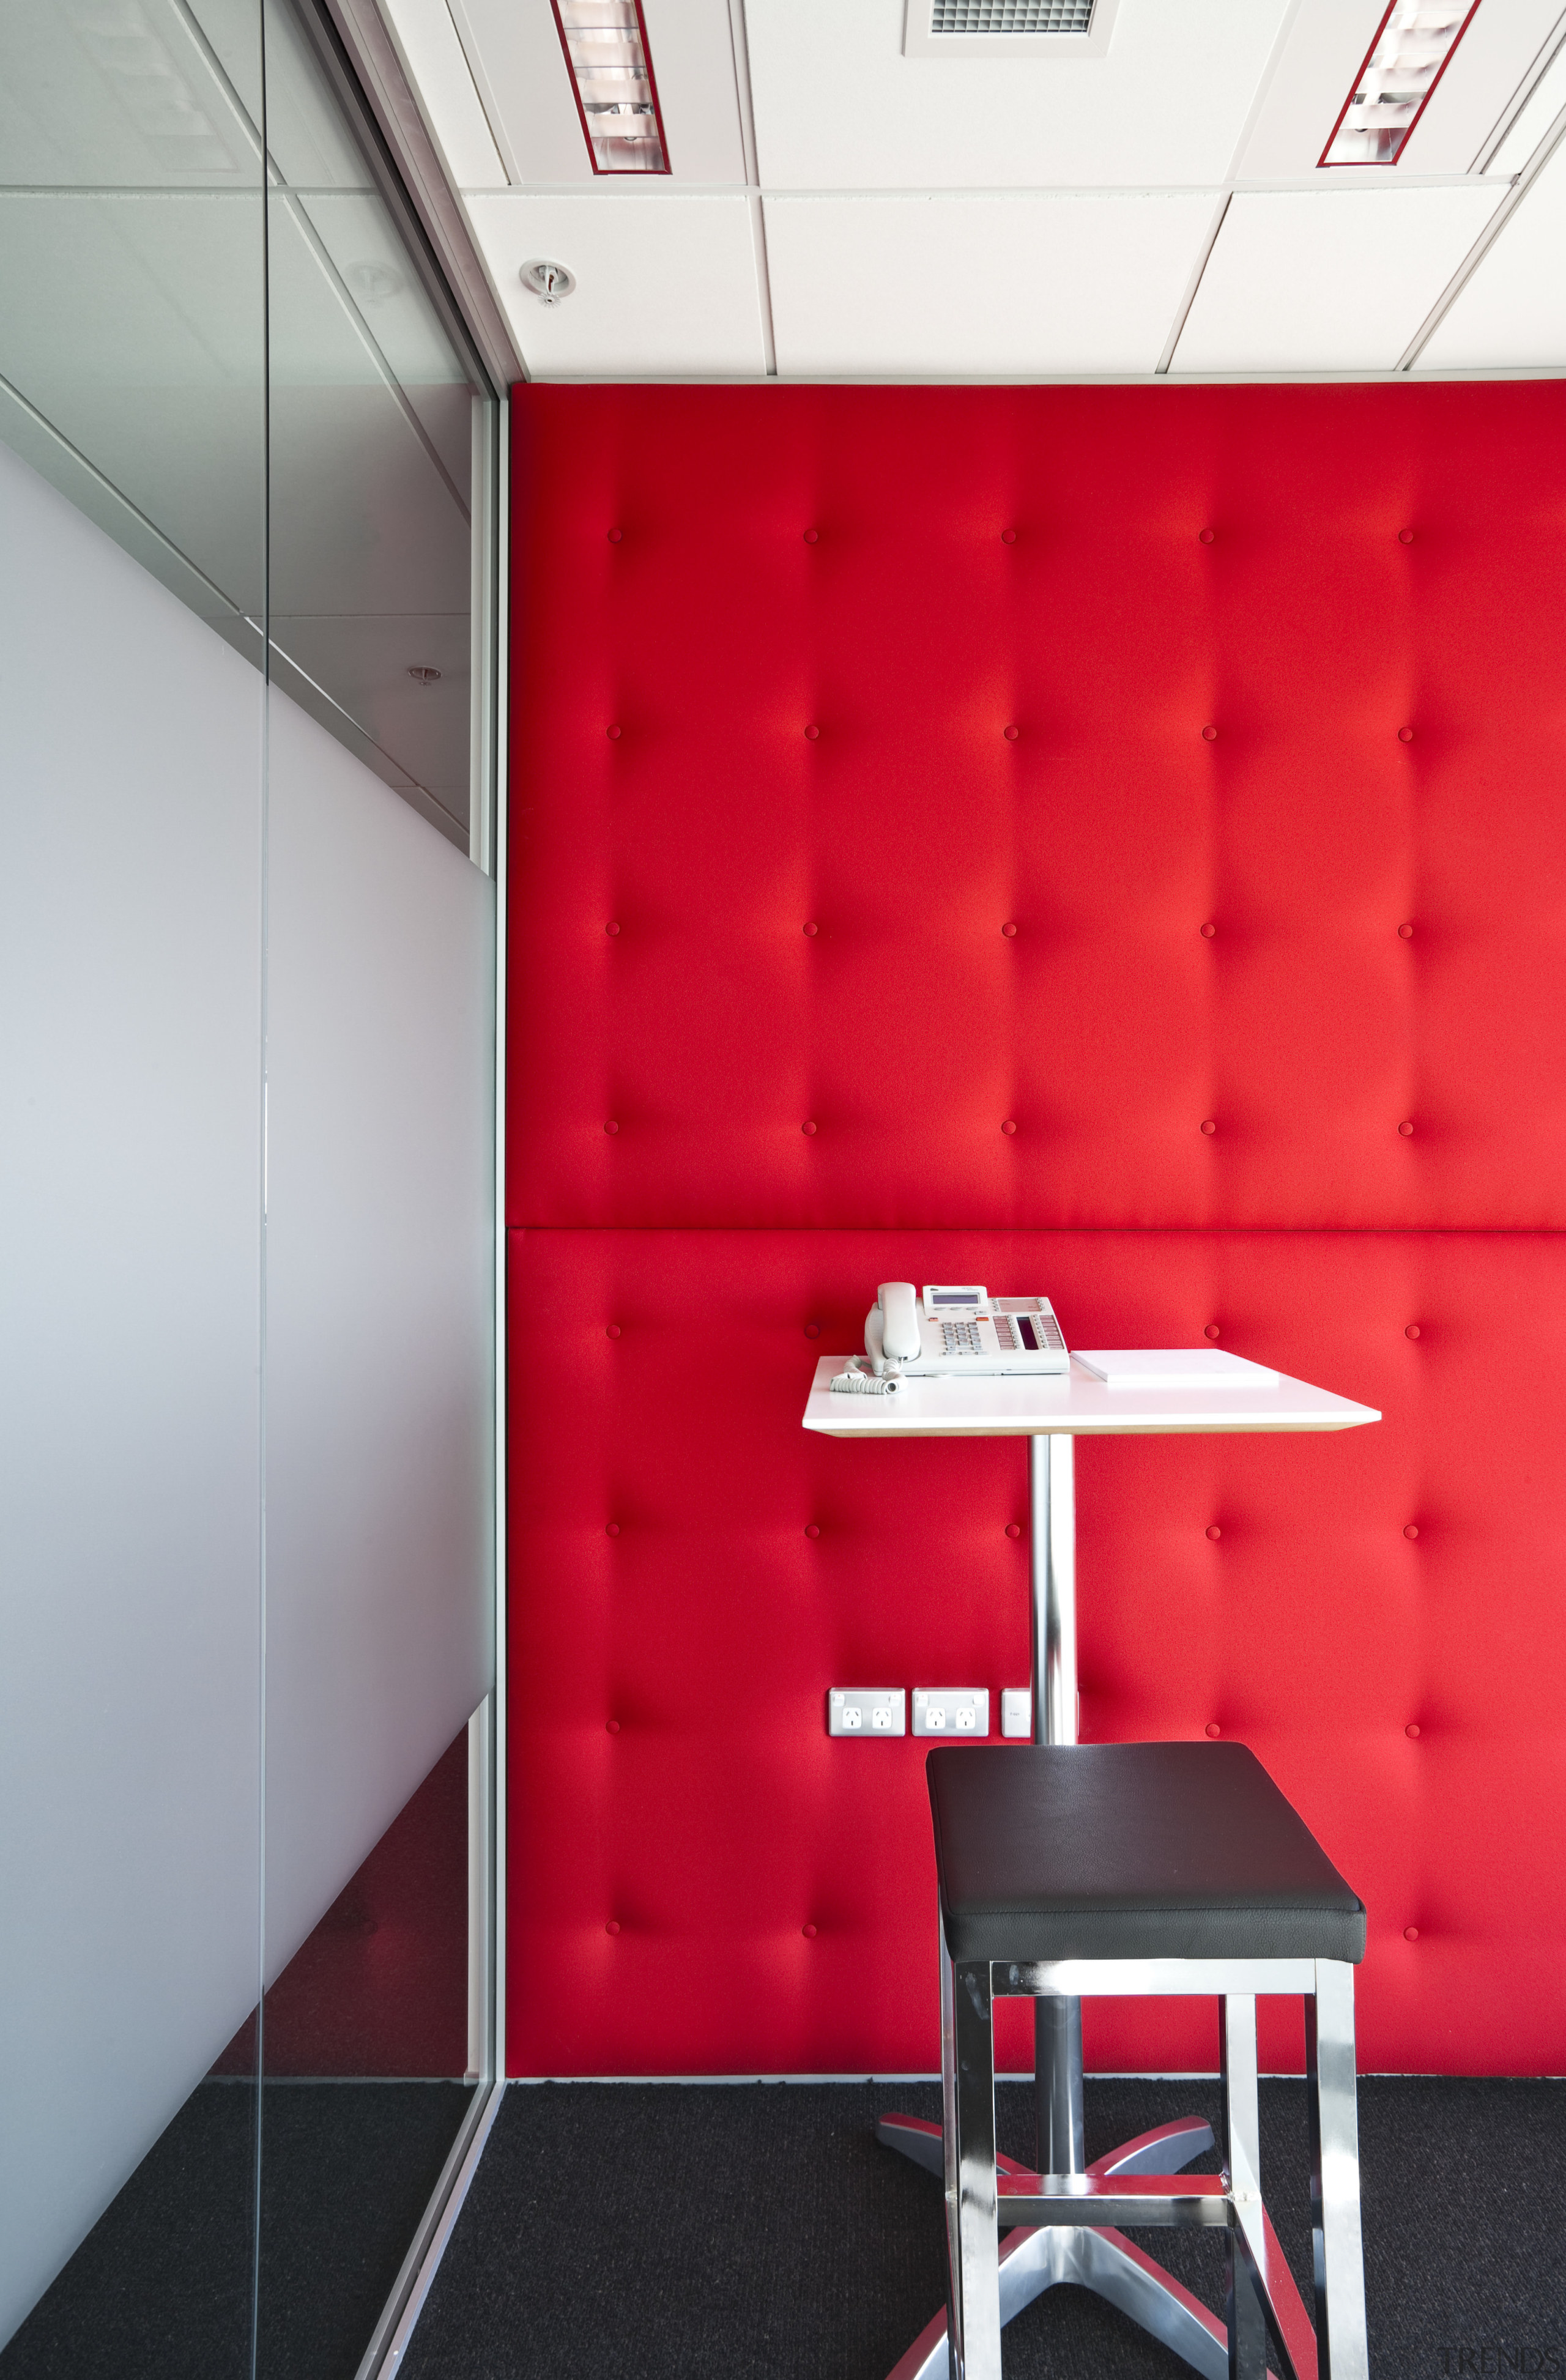 The office interiors at the Club Tower reflect architecture, ceiling, design, floor, furniture, interior design, product, product design, red, table, wall, red, gray